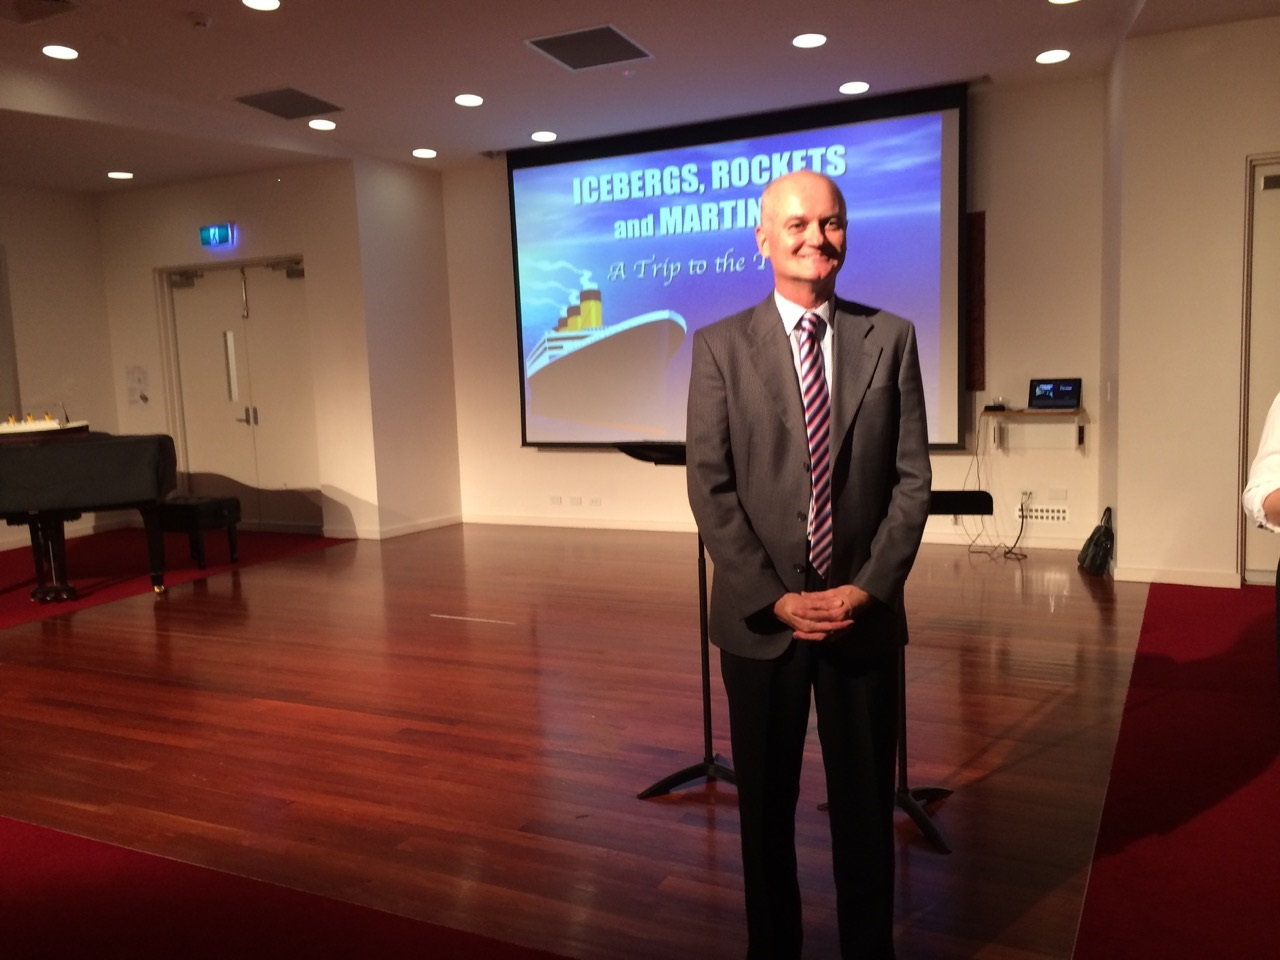 'Icebergs, Rockets and Martinis' - my talk at Kambala as part of the 2015 Spring Lecture Series